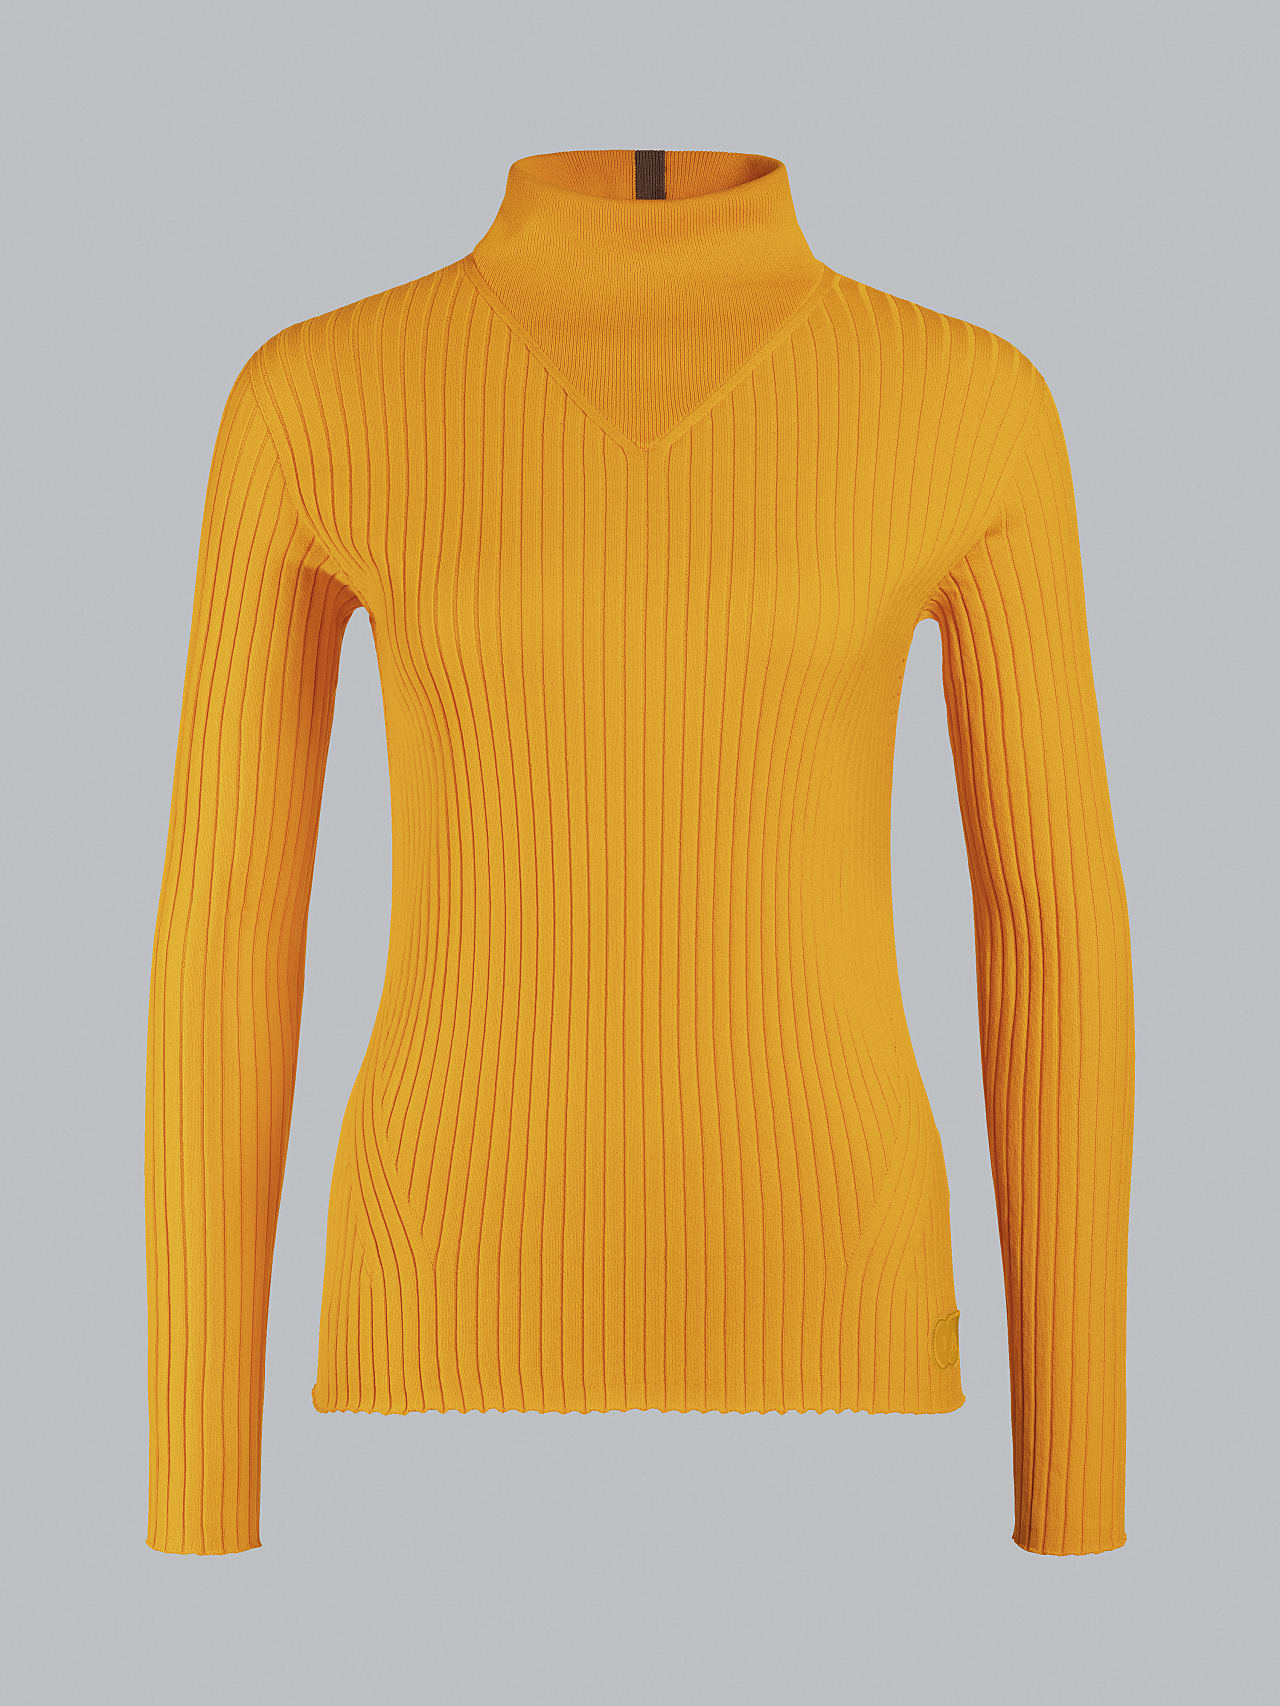 FAXEE V1.Y5.02 Seamless 3D Knit Mock-Neck Jumper yellow Back Alpha Tauri